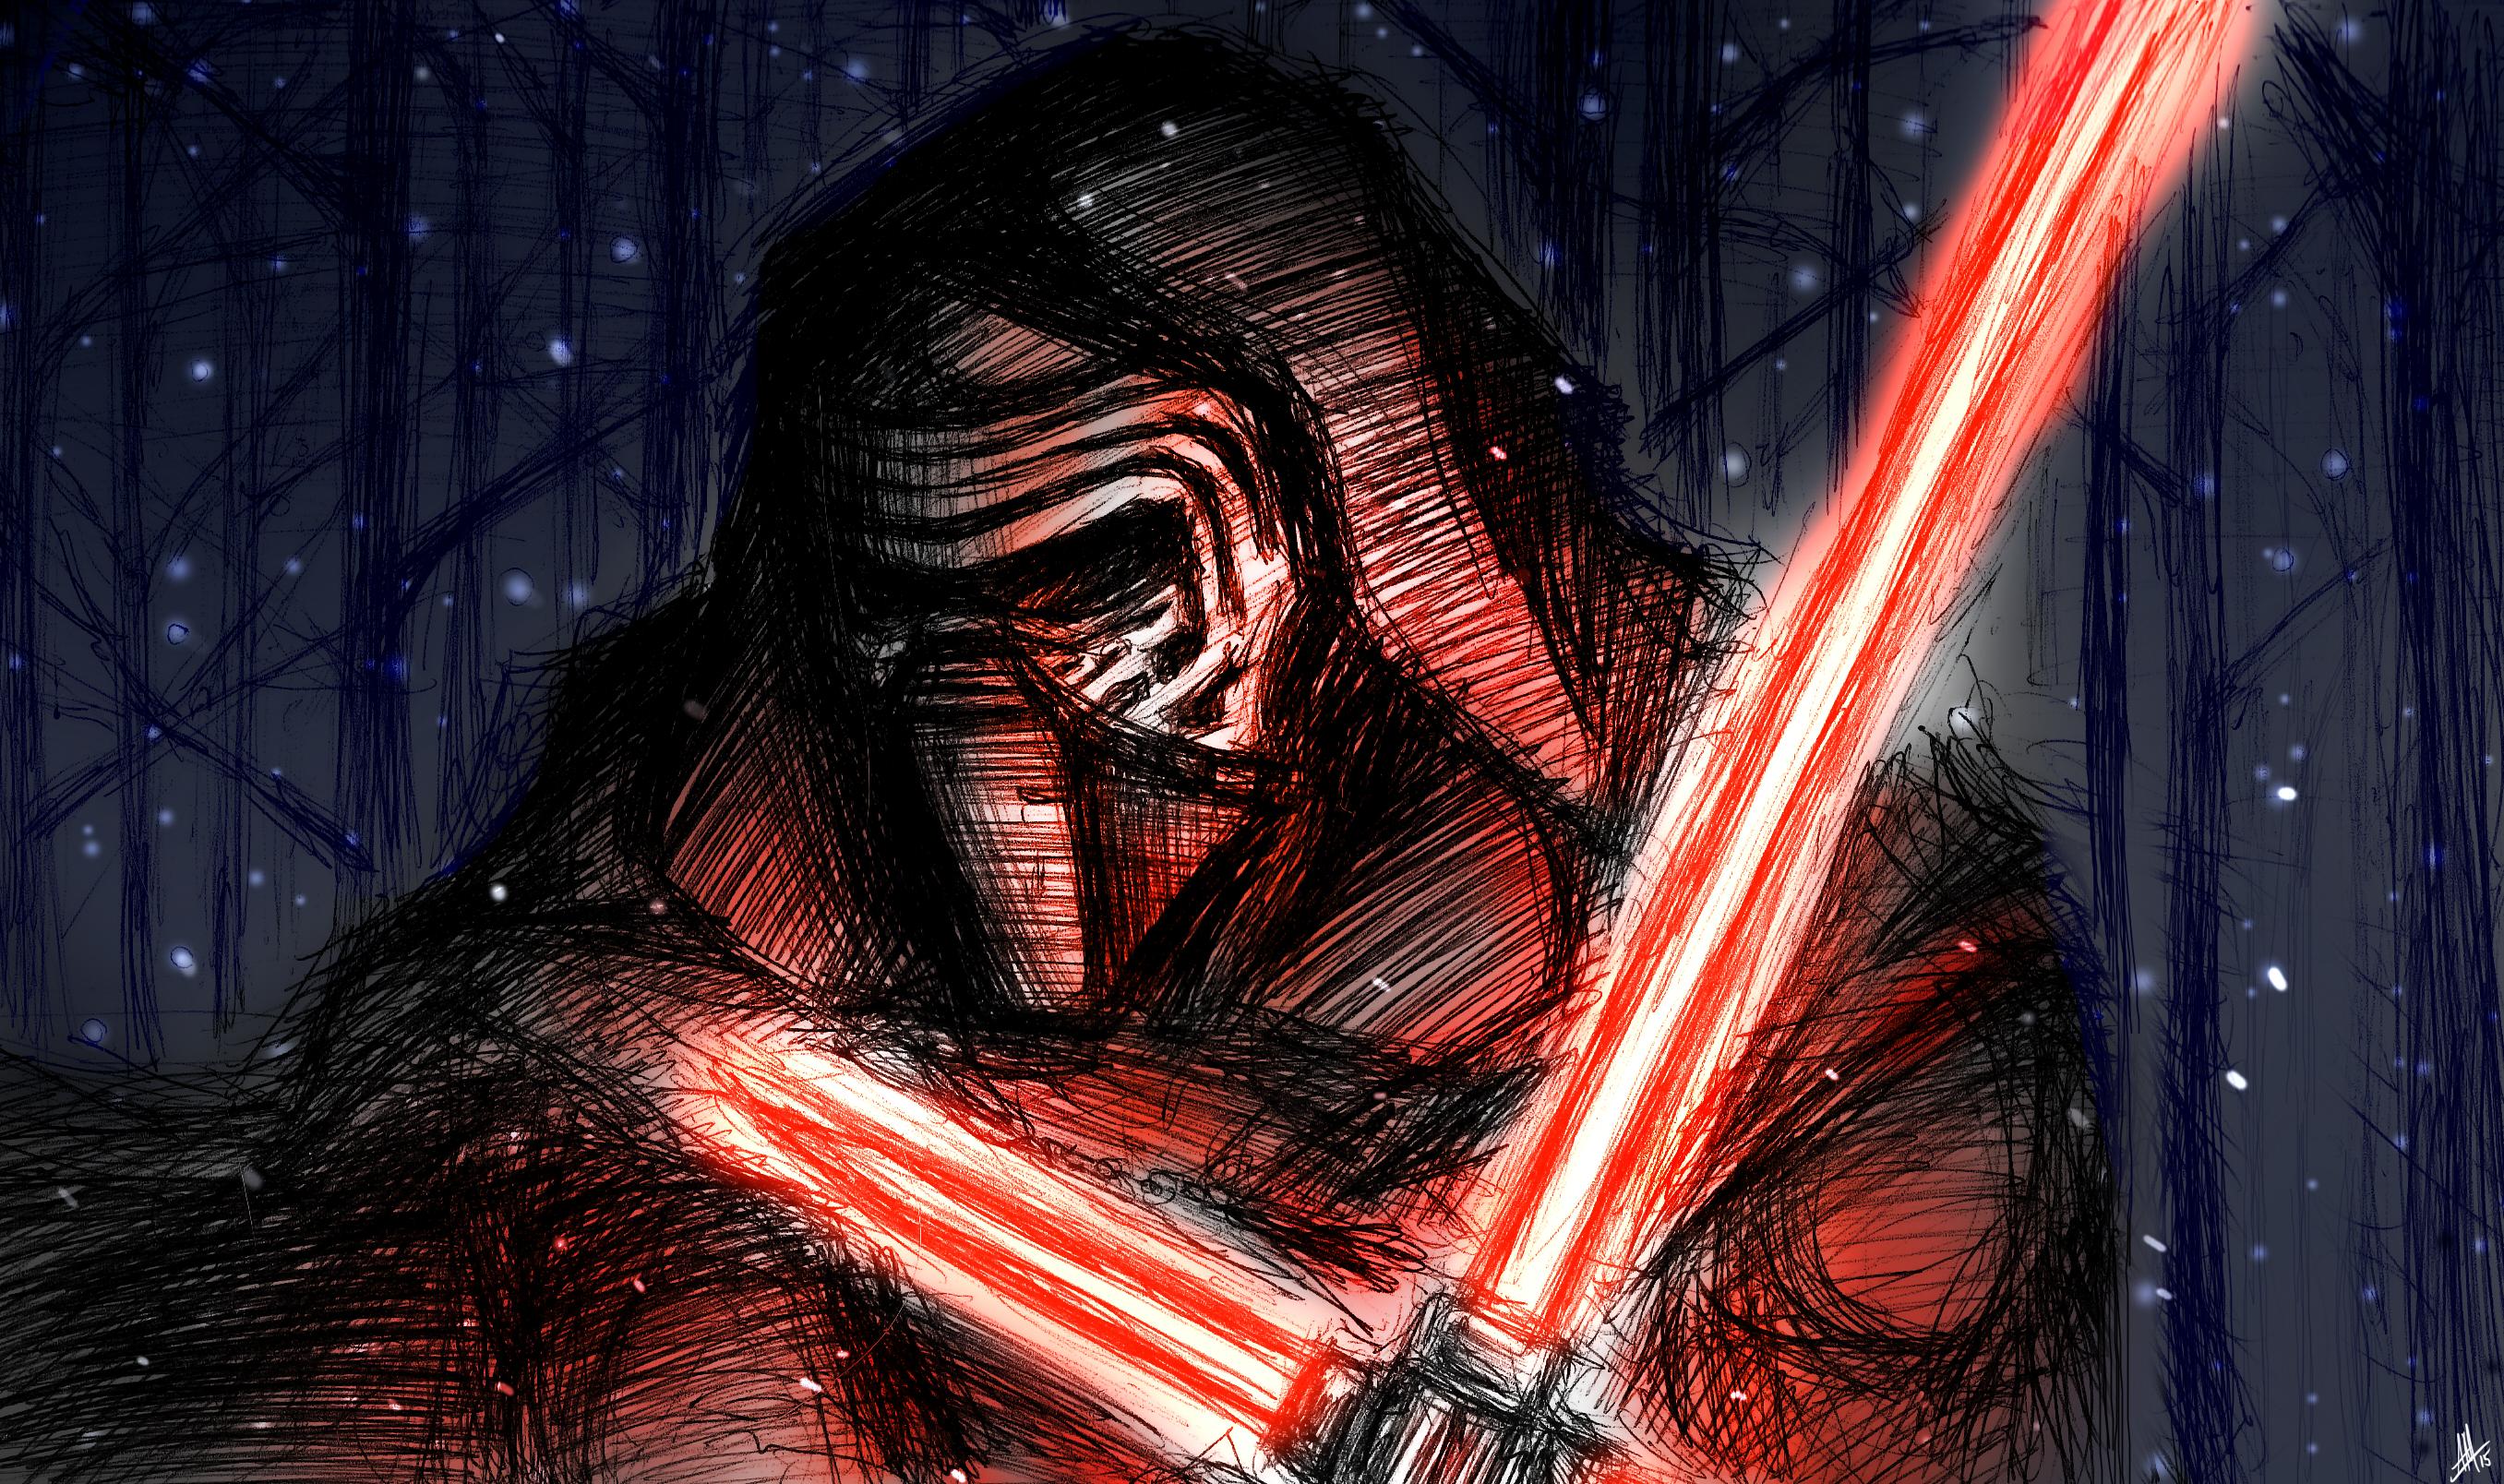 Kylo Ren The Force Awakens Wallpapers: Kylo Ren: Star Wars The Force Awakens By Smudgeandfrank On